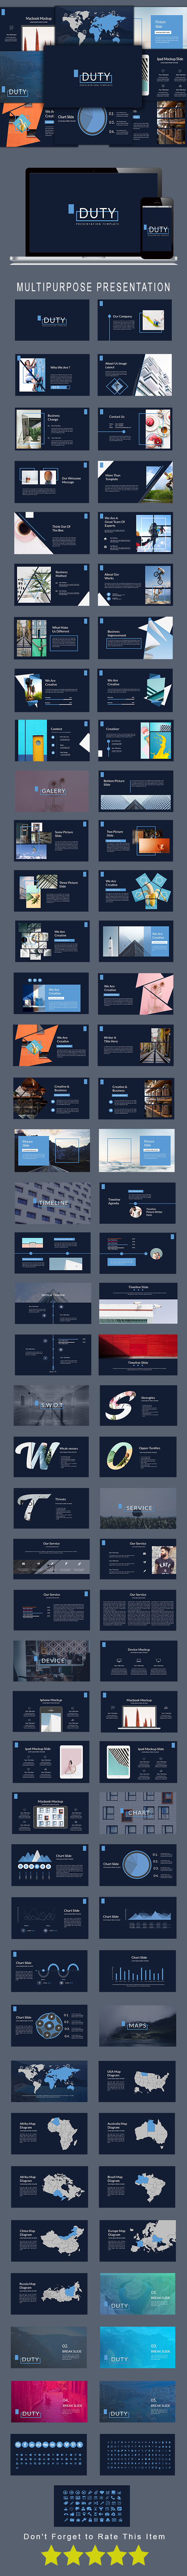 Duty Multipurpose Keynote Template - Keynote Templates Presentation Templates